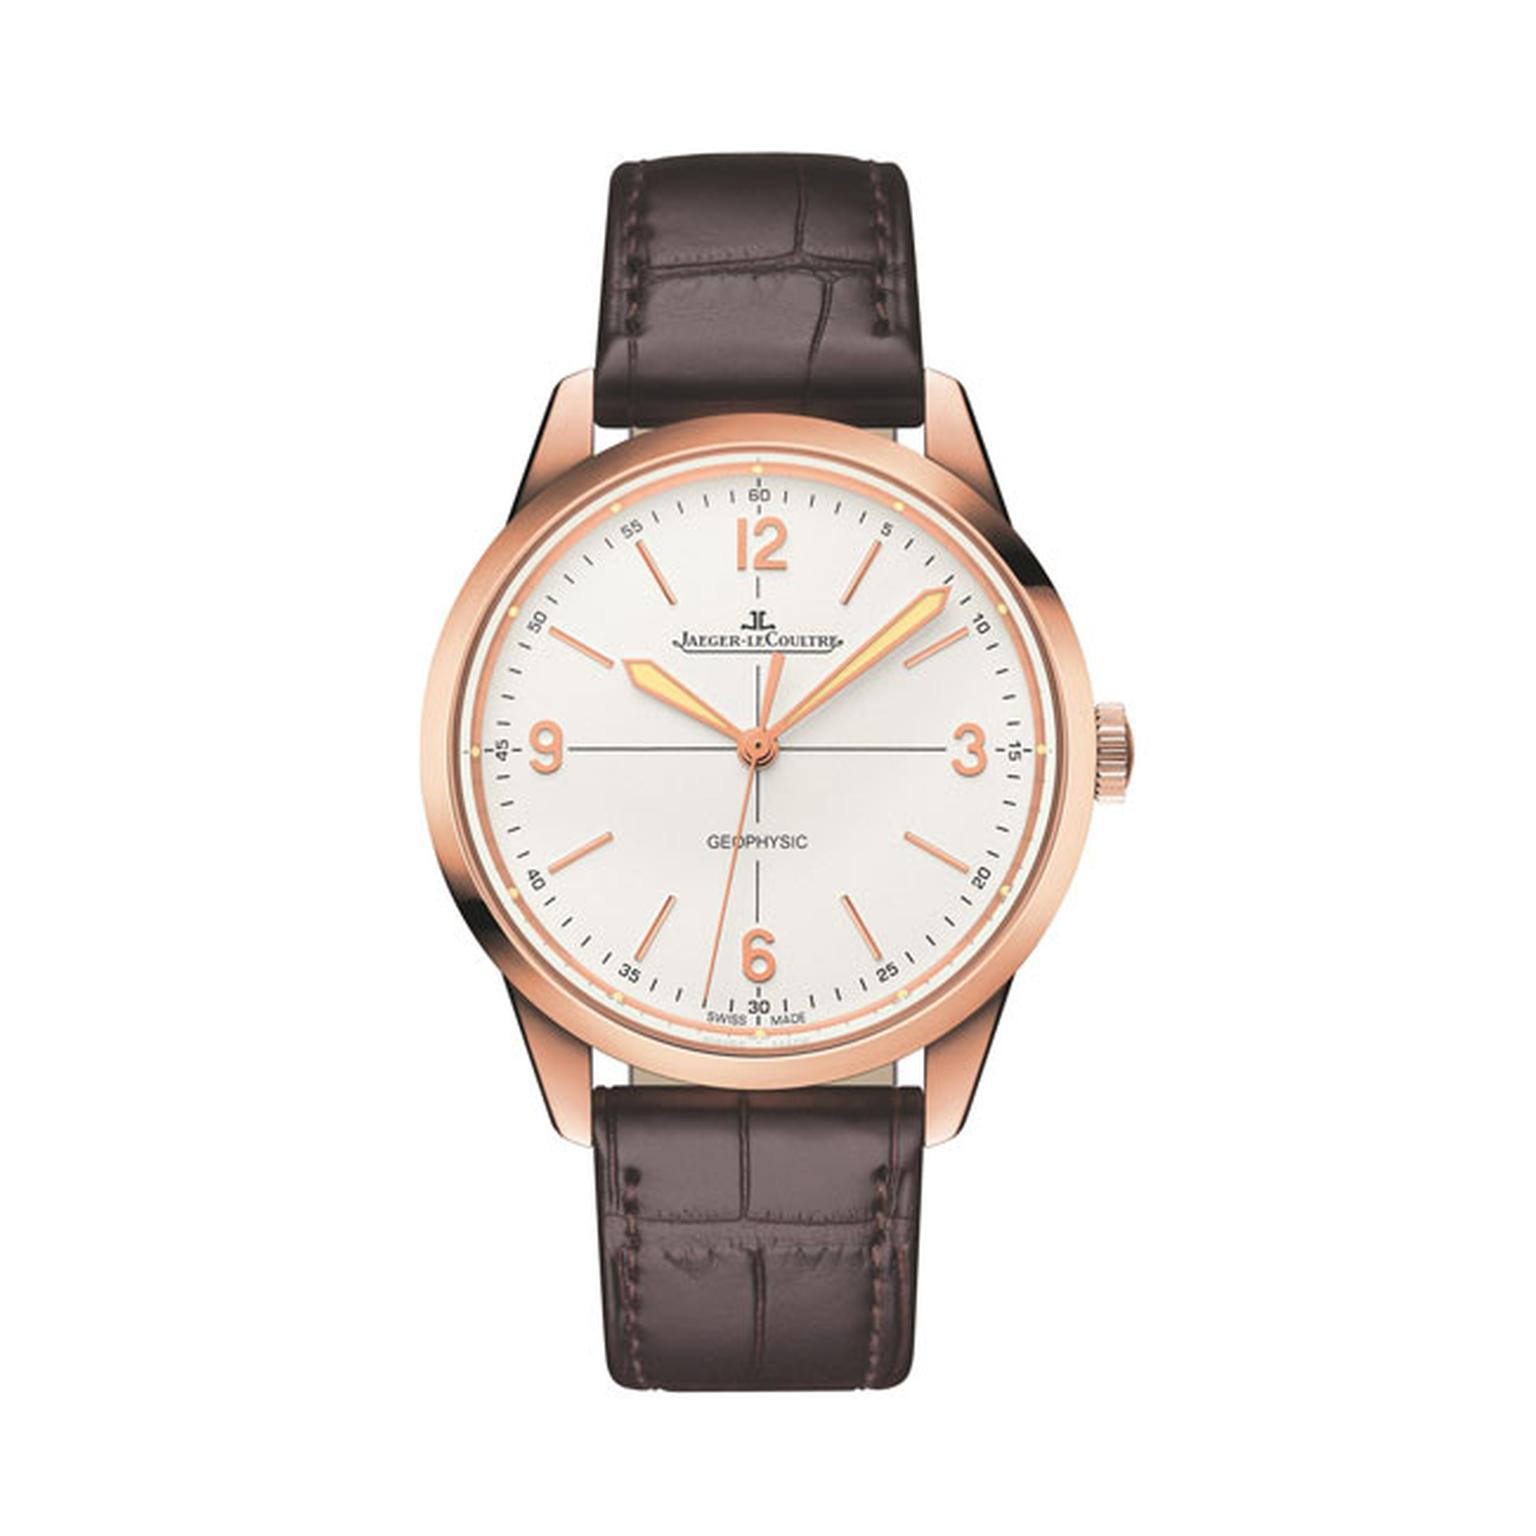 Jaeger LeCoultre Geophysic rose gold watch_main.jpg